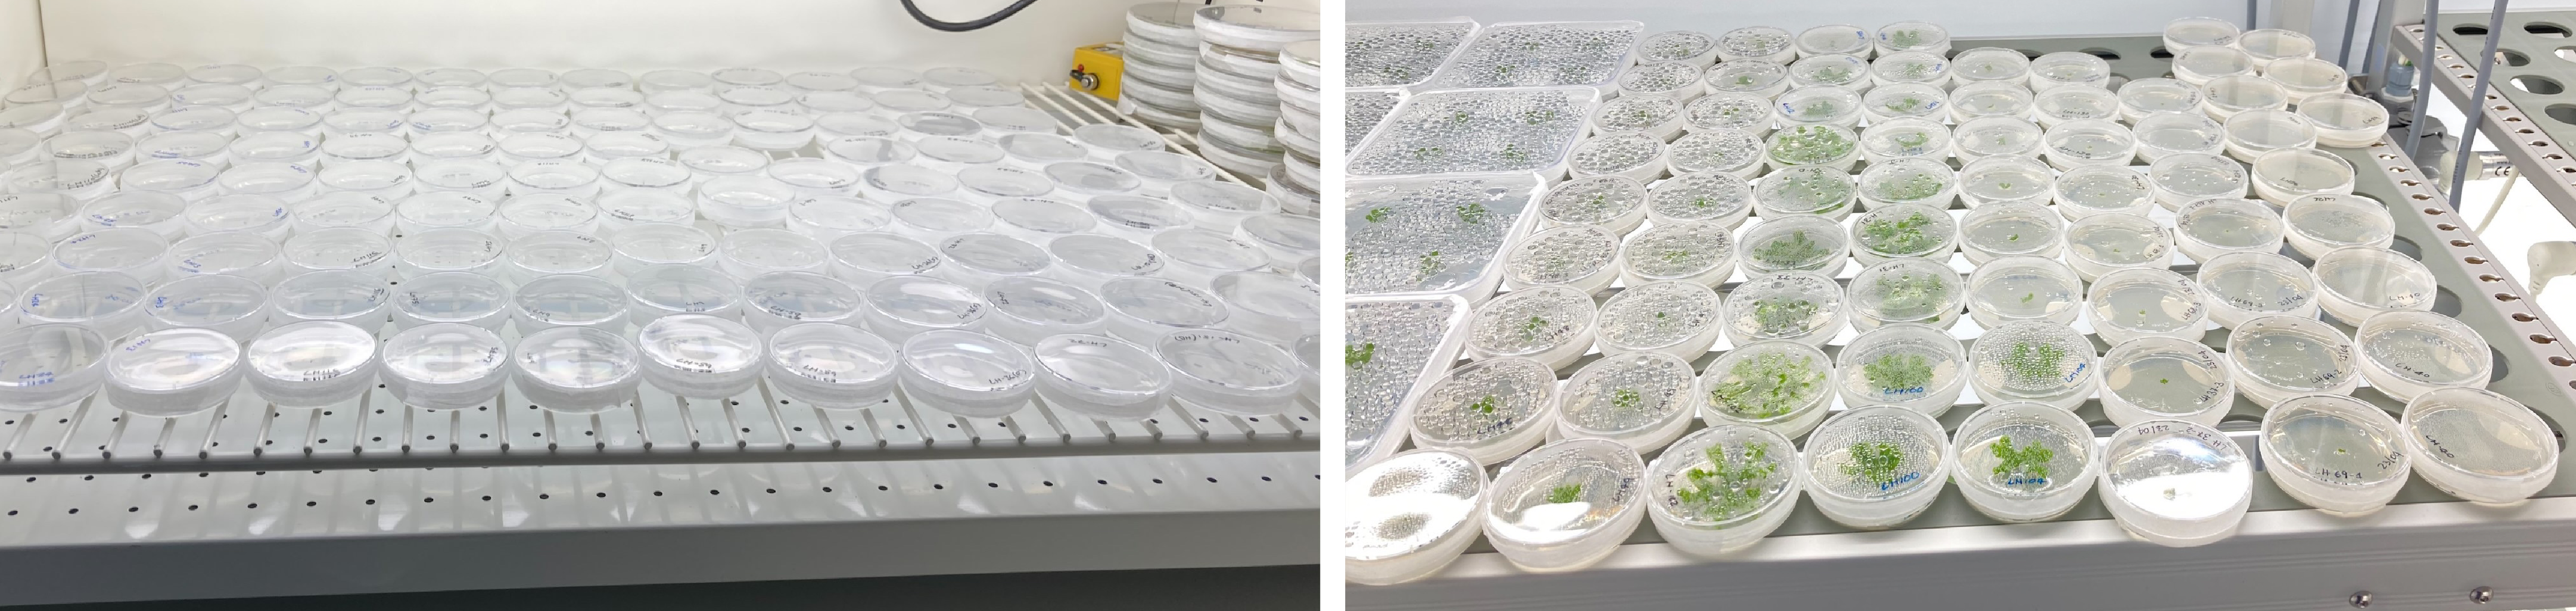 Great British Liverwort Hunt - Lunularia on left and Marchantia on right growing on plates in growth chamber